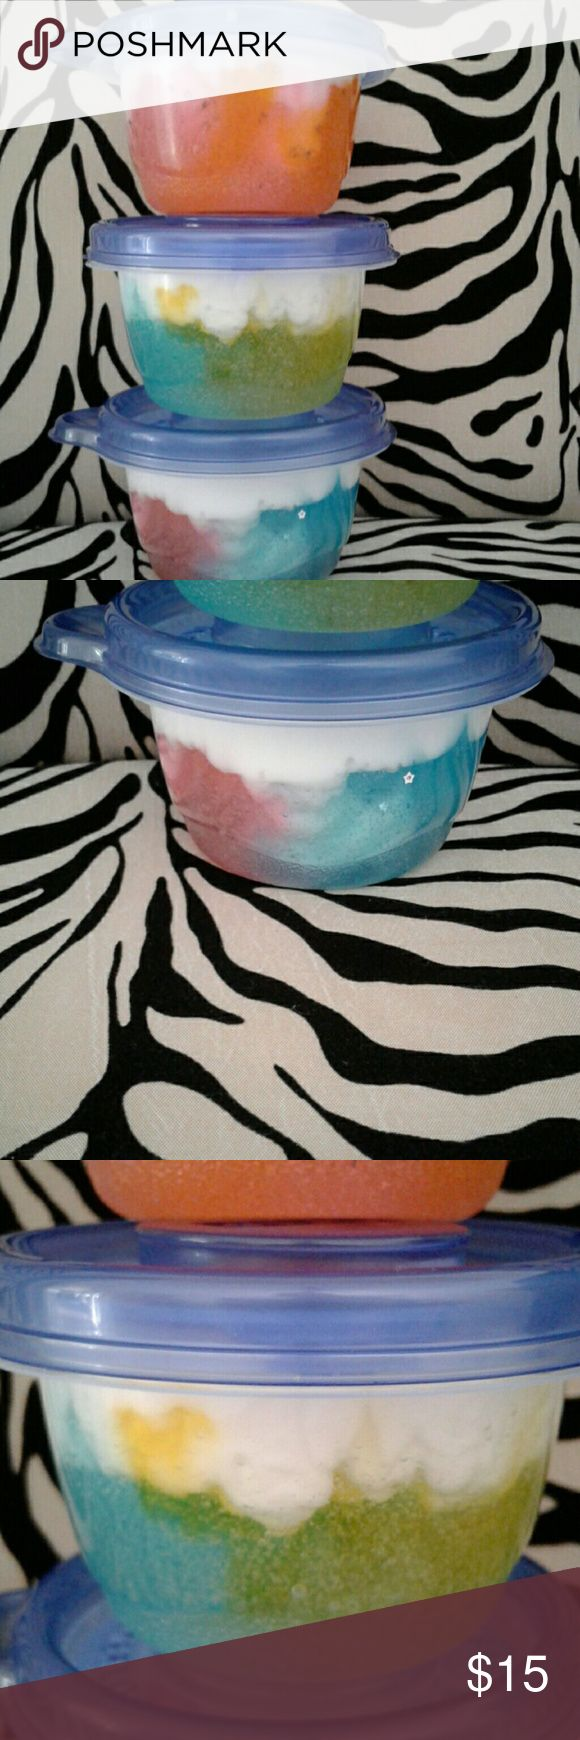 Avalanche slime Duo 4 ounce container of avalanche slime the first Avalanche slime is orange and pink with silver stars the second one is yellow and green with no Glitter and the last one is is a blue and pink with silver Other